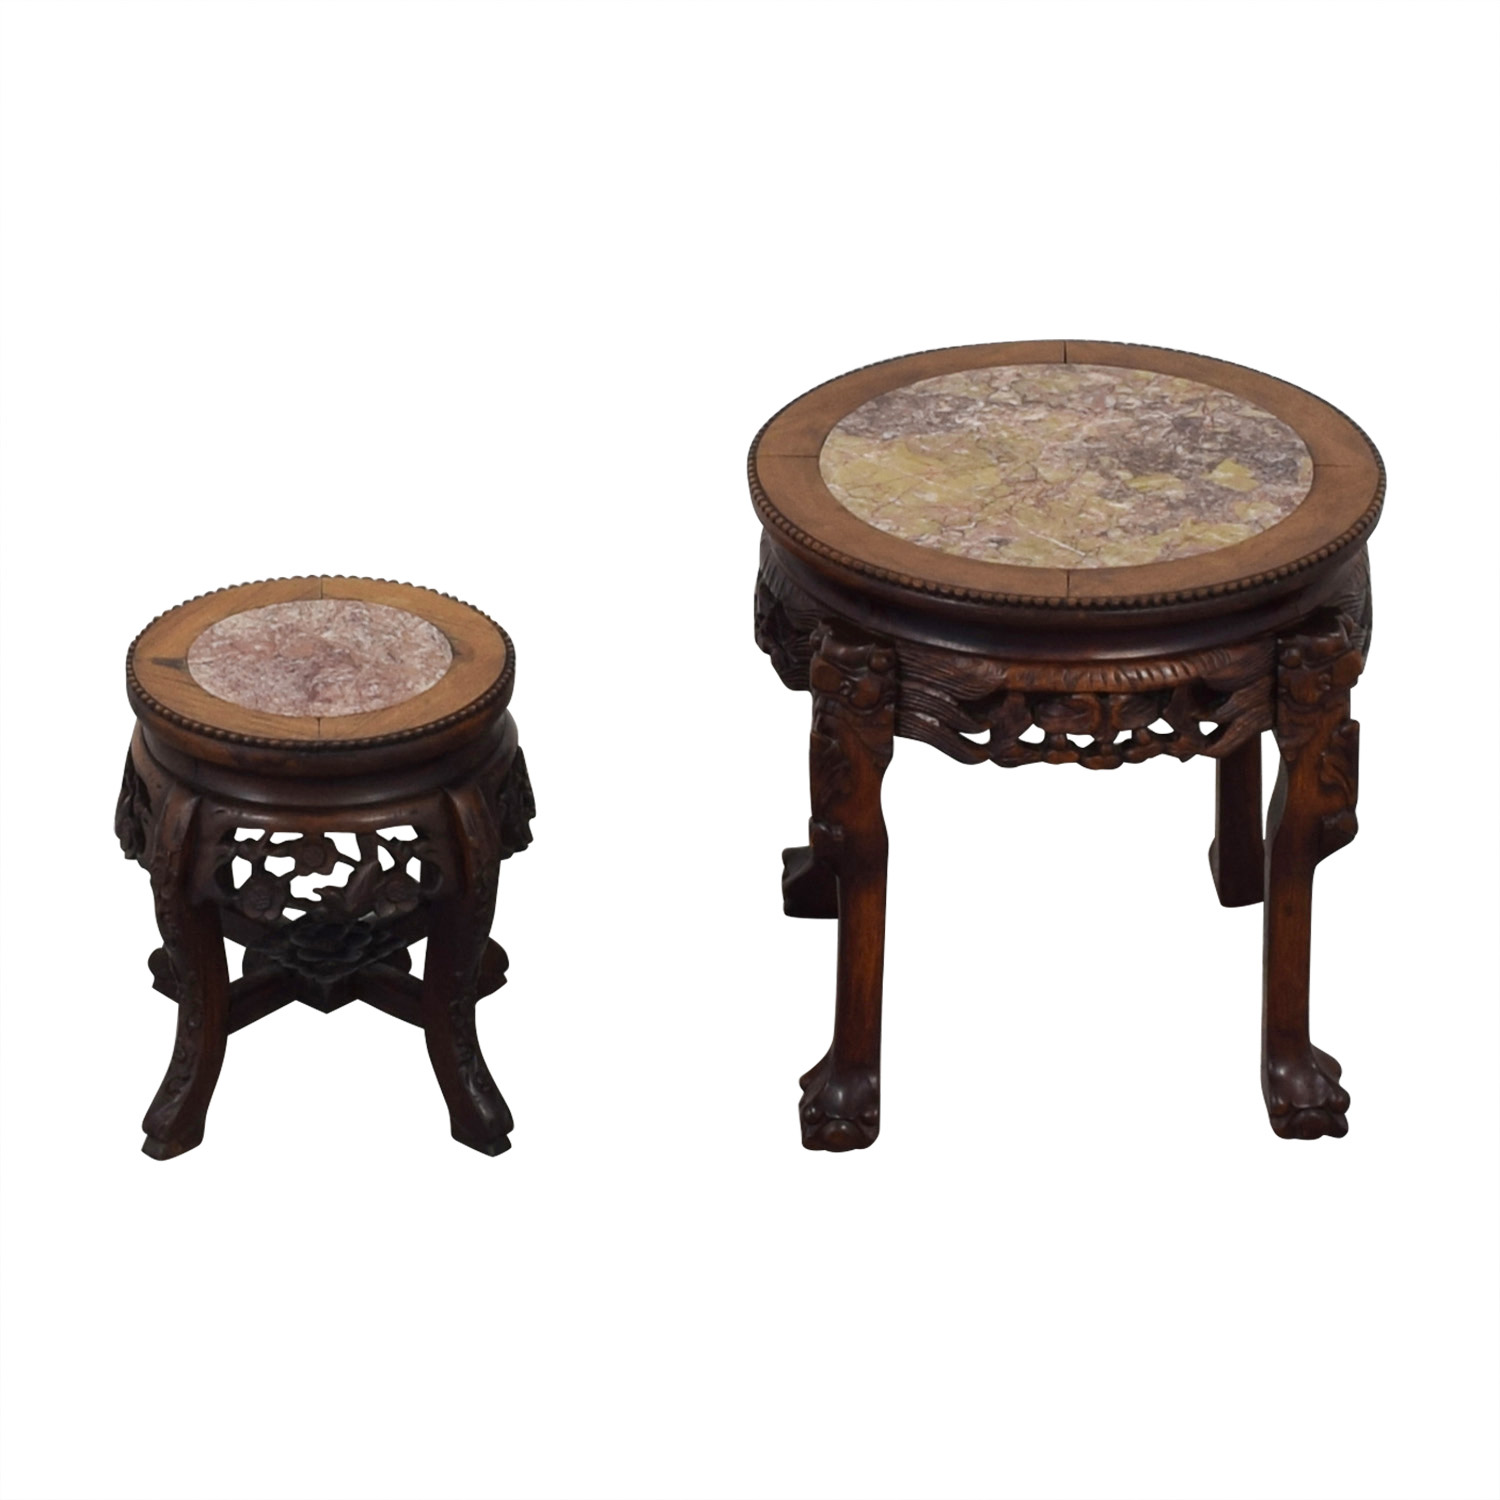 Oriental Carved Wood and Marble Occasional Tables dimensions